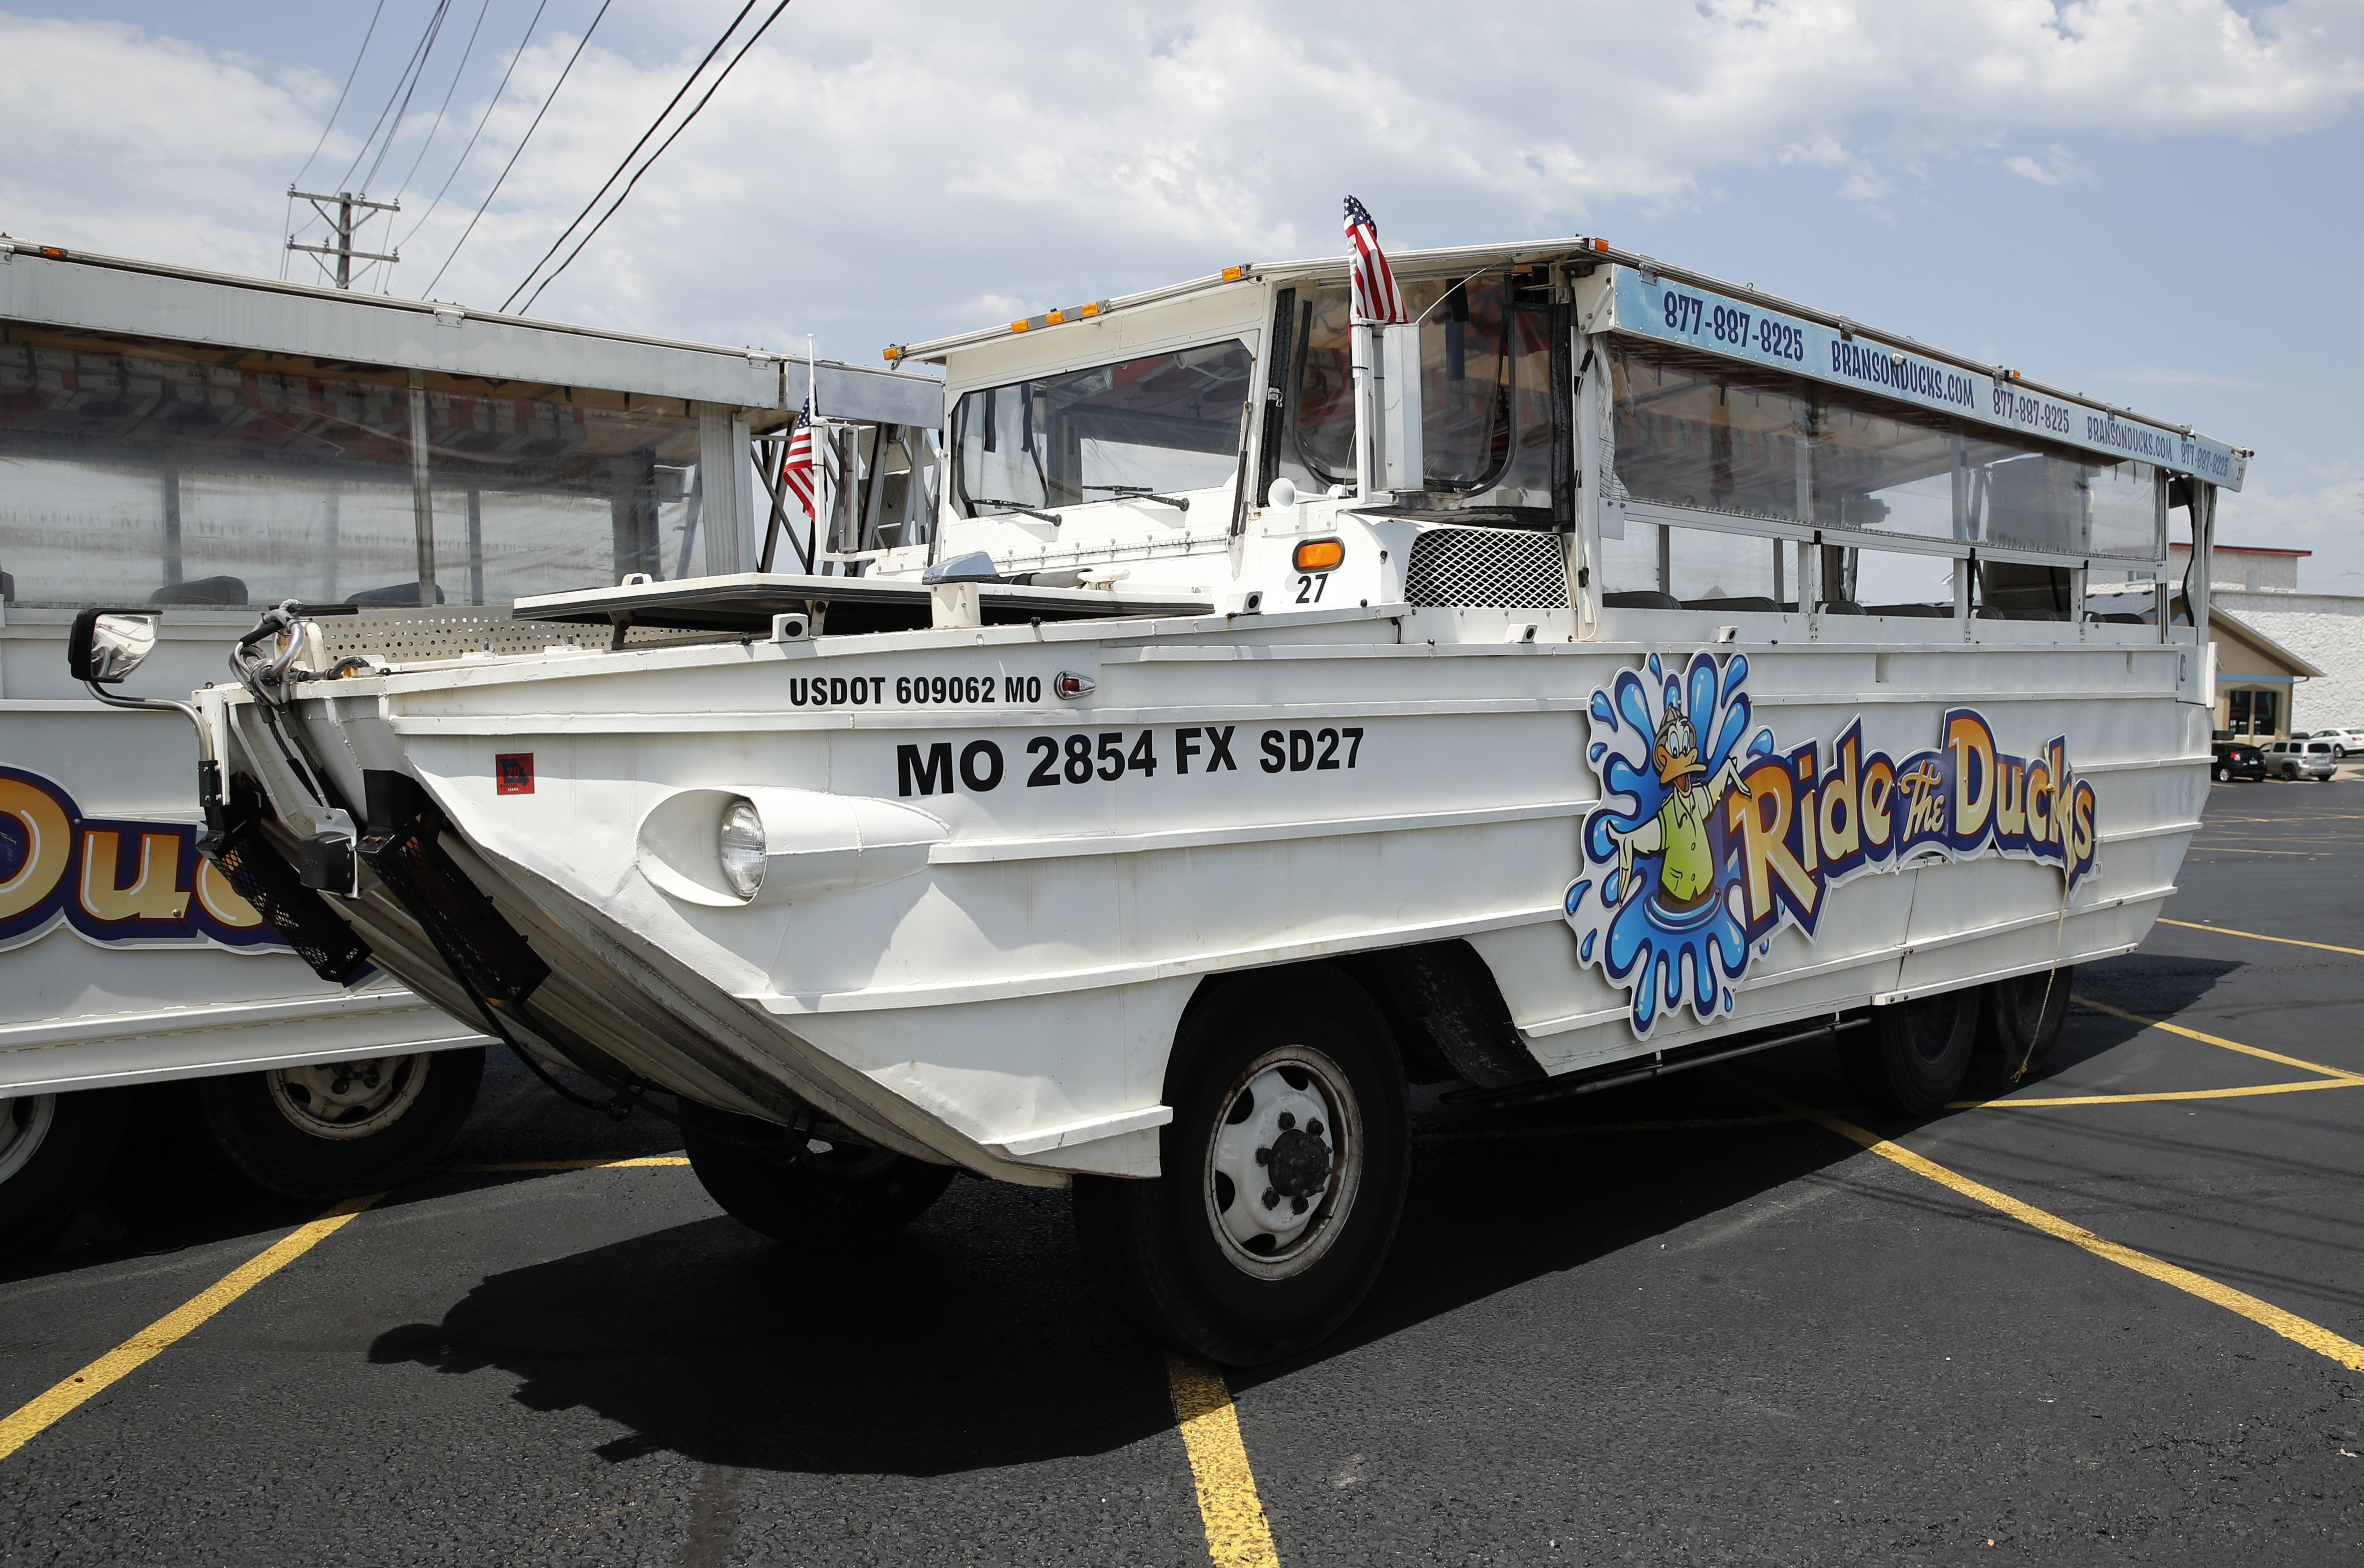 FILE - In this July 20, 2018, file photo, a duck boat sits idle in the parking lot of Ride the Ducks, an amphibious tour operator in Branson, Mo. A lawsuit seeking $100 million in damages was filed Sunday, July 29, against the owners and operators of a duck boat that sank July 19.